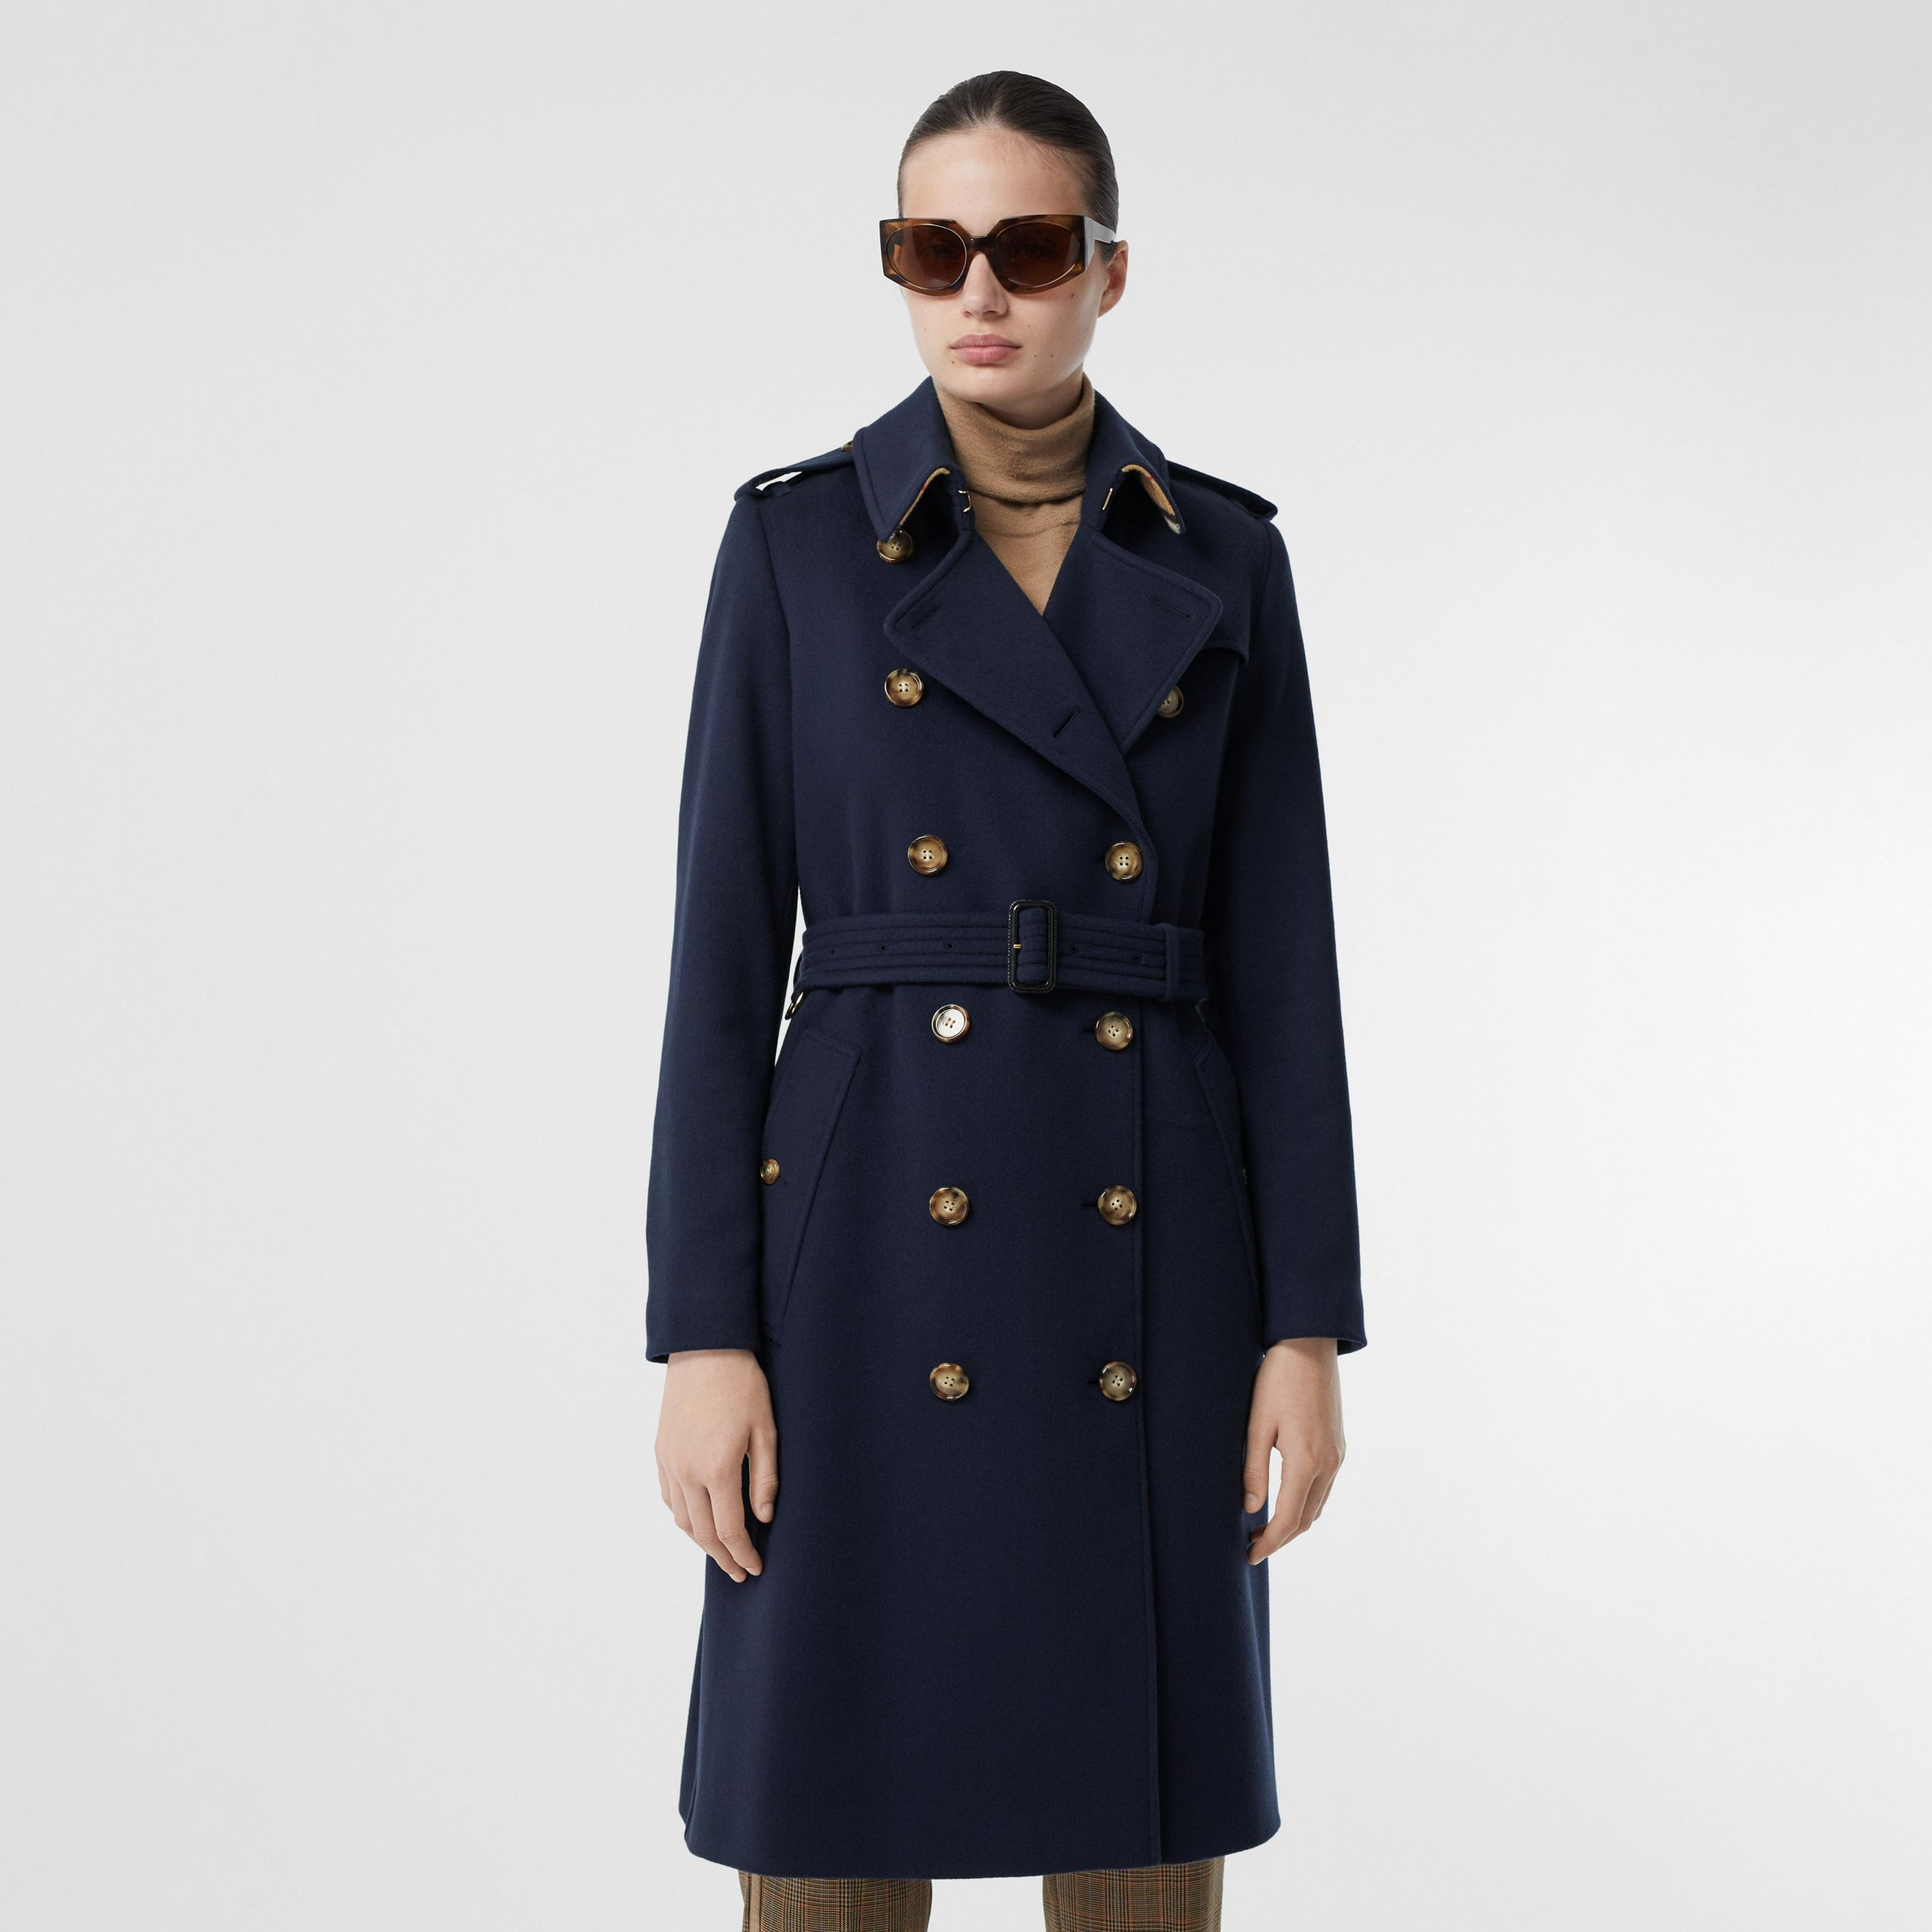 Cashmere Trench Coat in Navy - Women | Burberry - 1